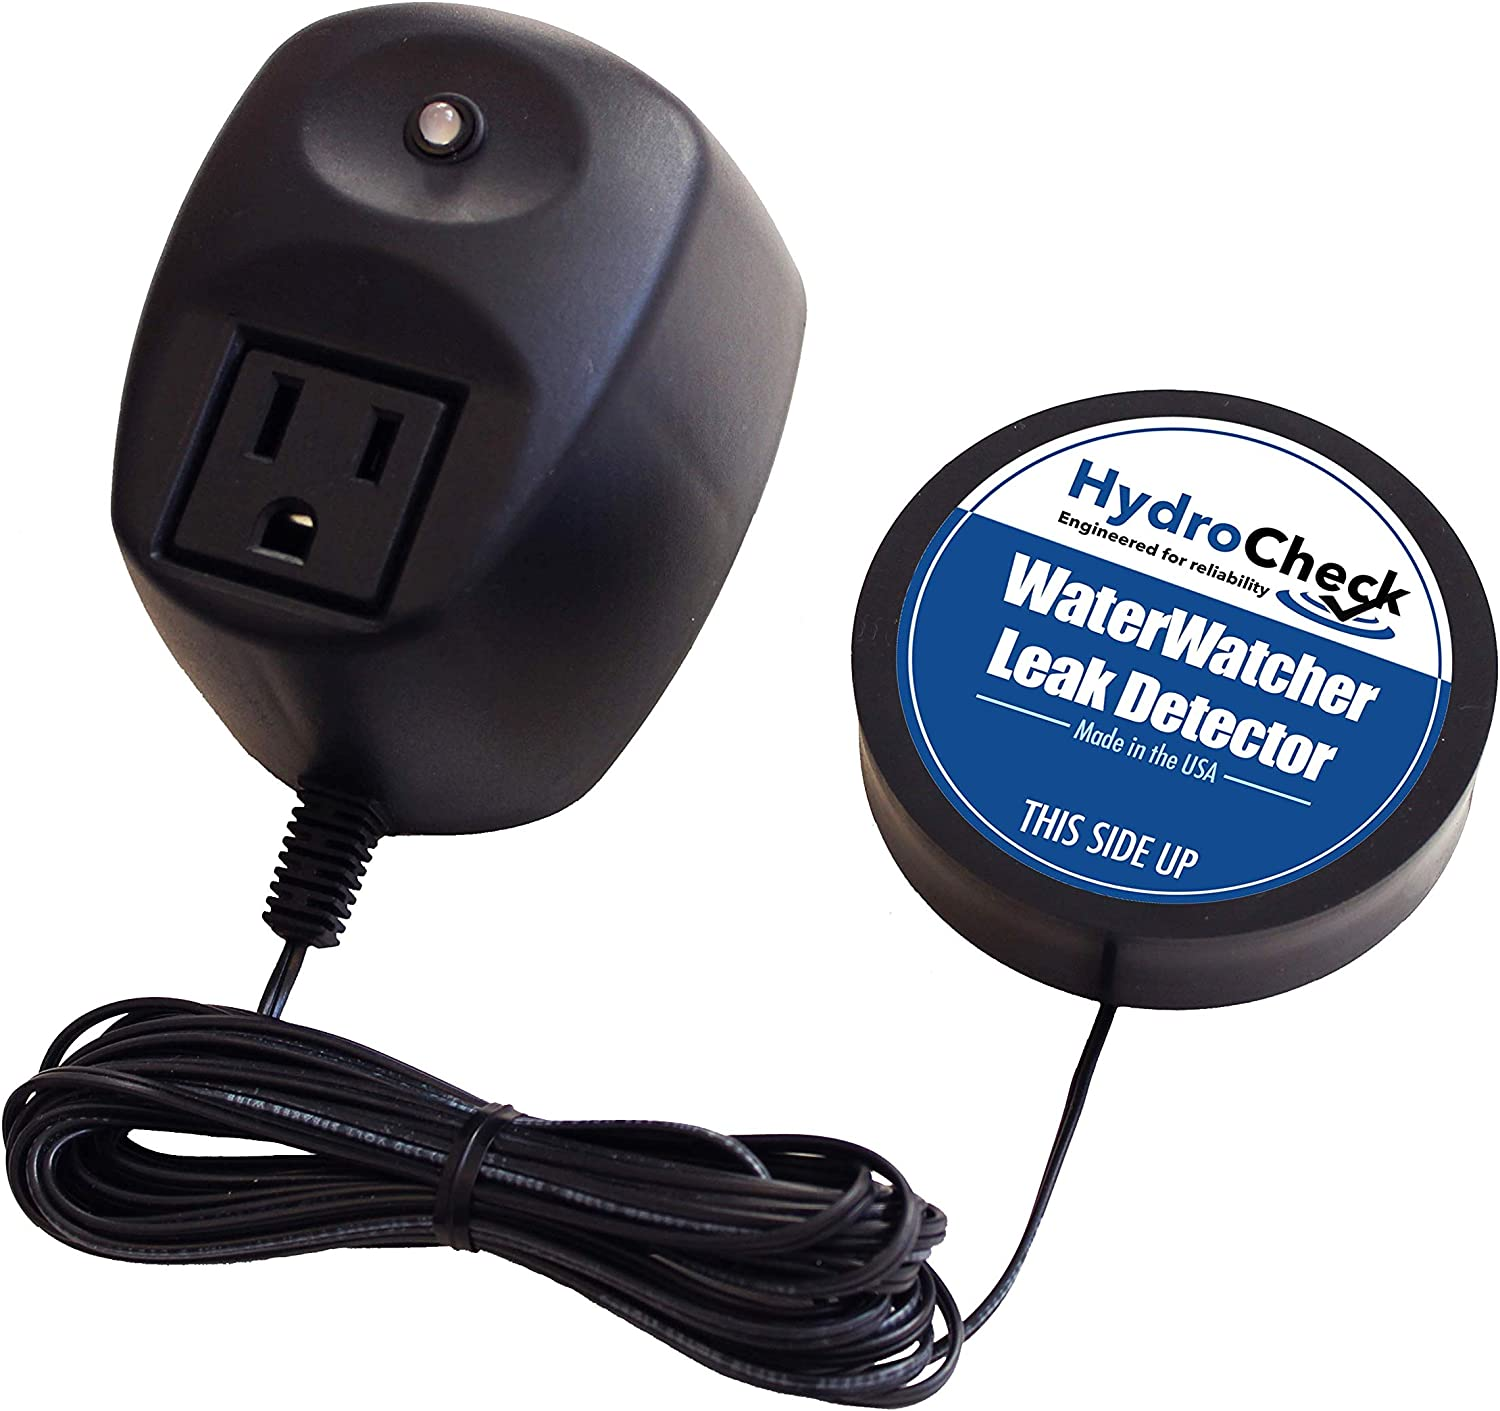 Leak Detector Alarm, Smart Sensor and Alert, Turns Off Flood Source, Pure Water Capable, Made in the USA by HydroCheck (WaterWatcher)